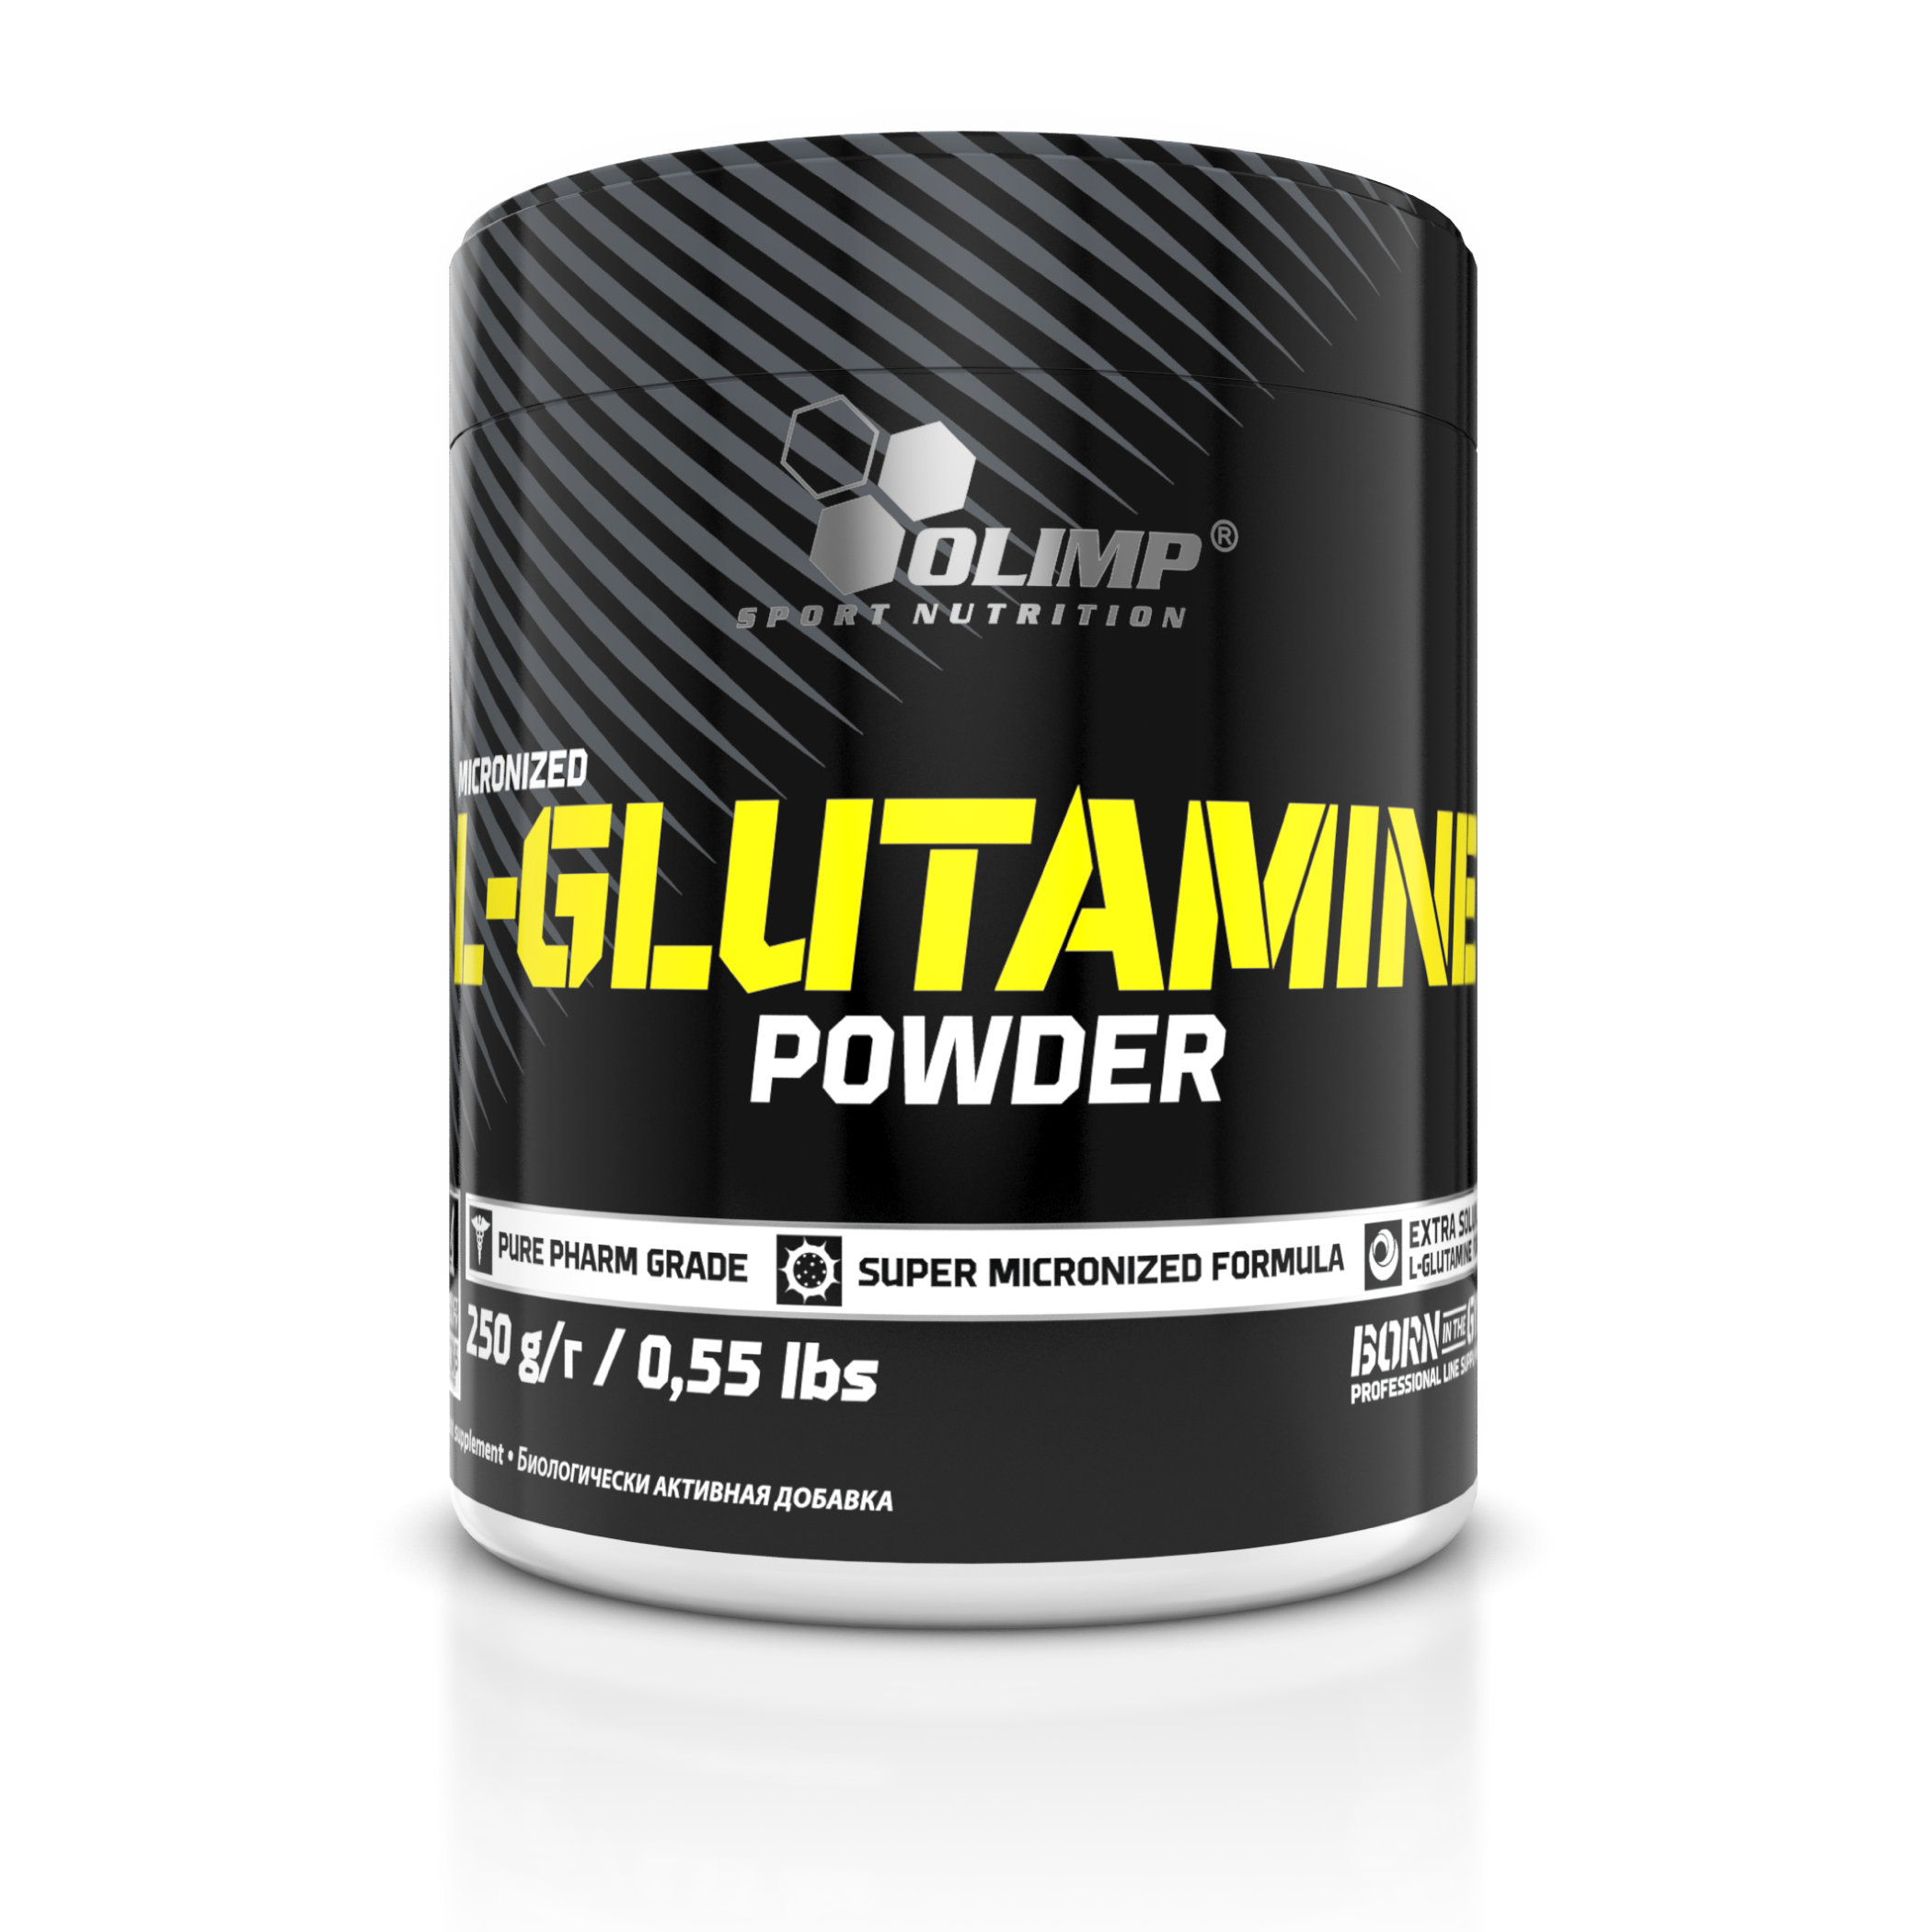 Л-глютамин L-Glutamine Powder, Olimp